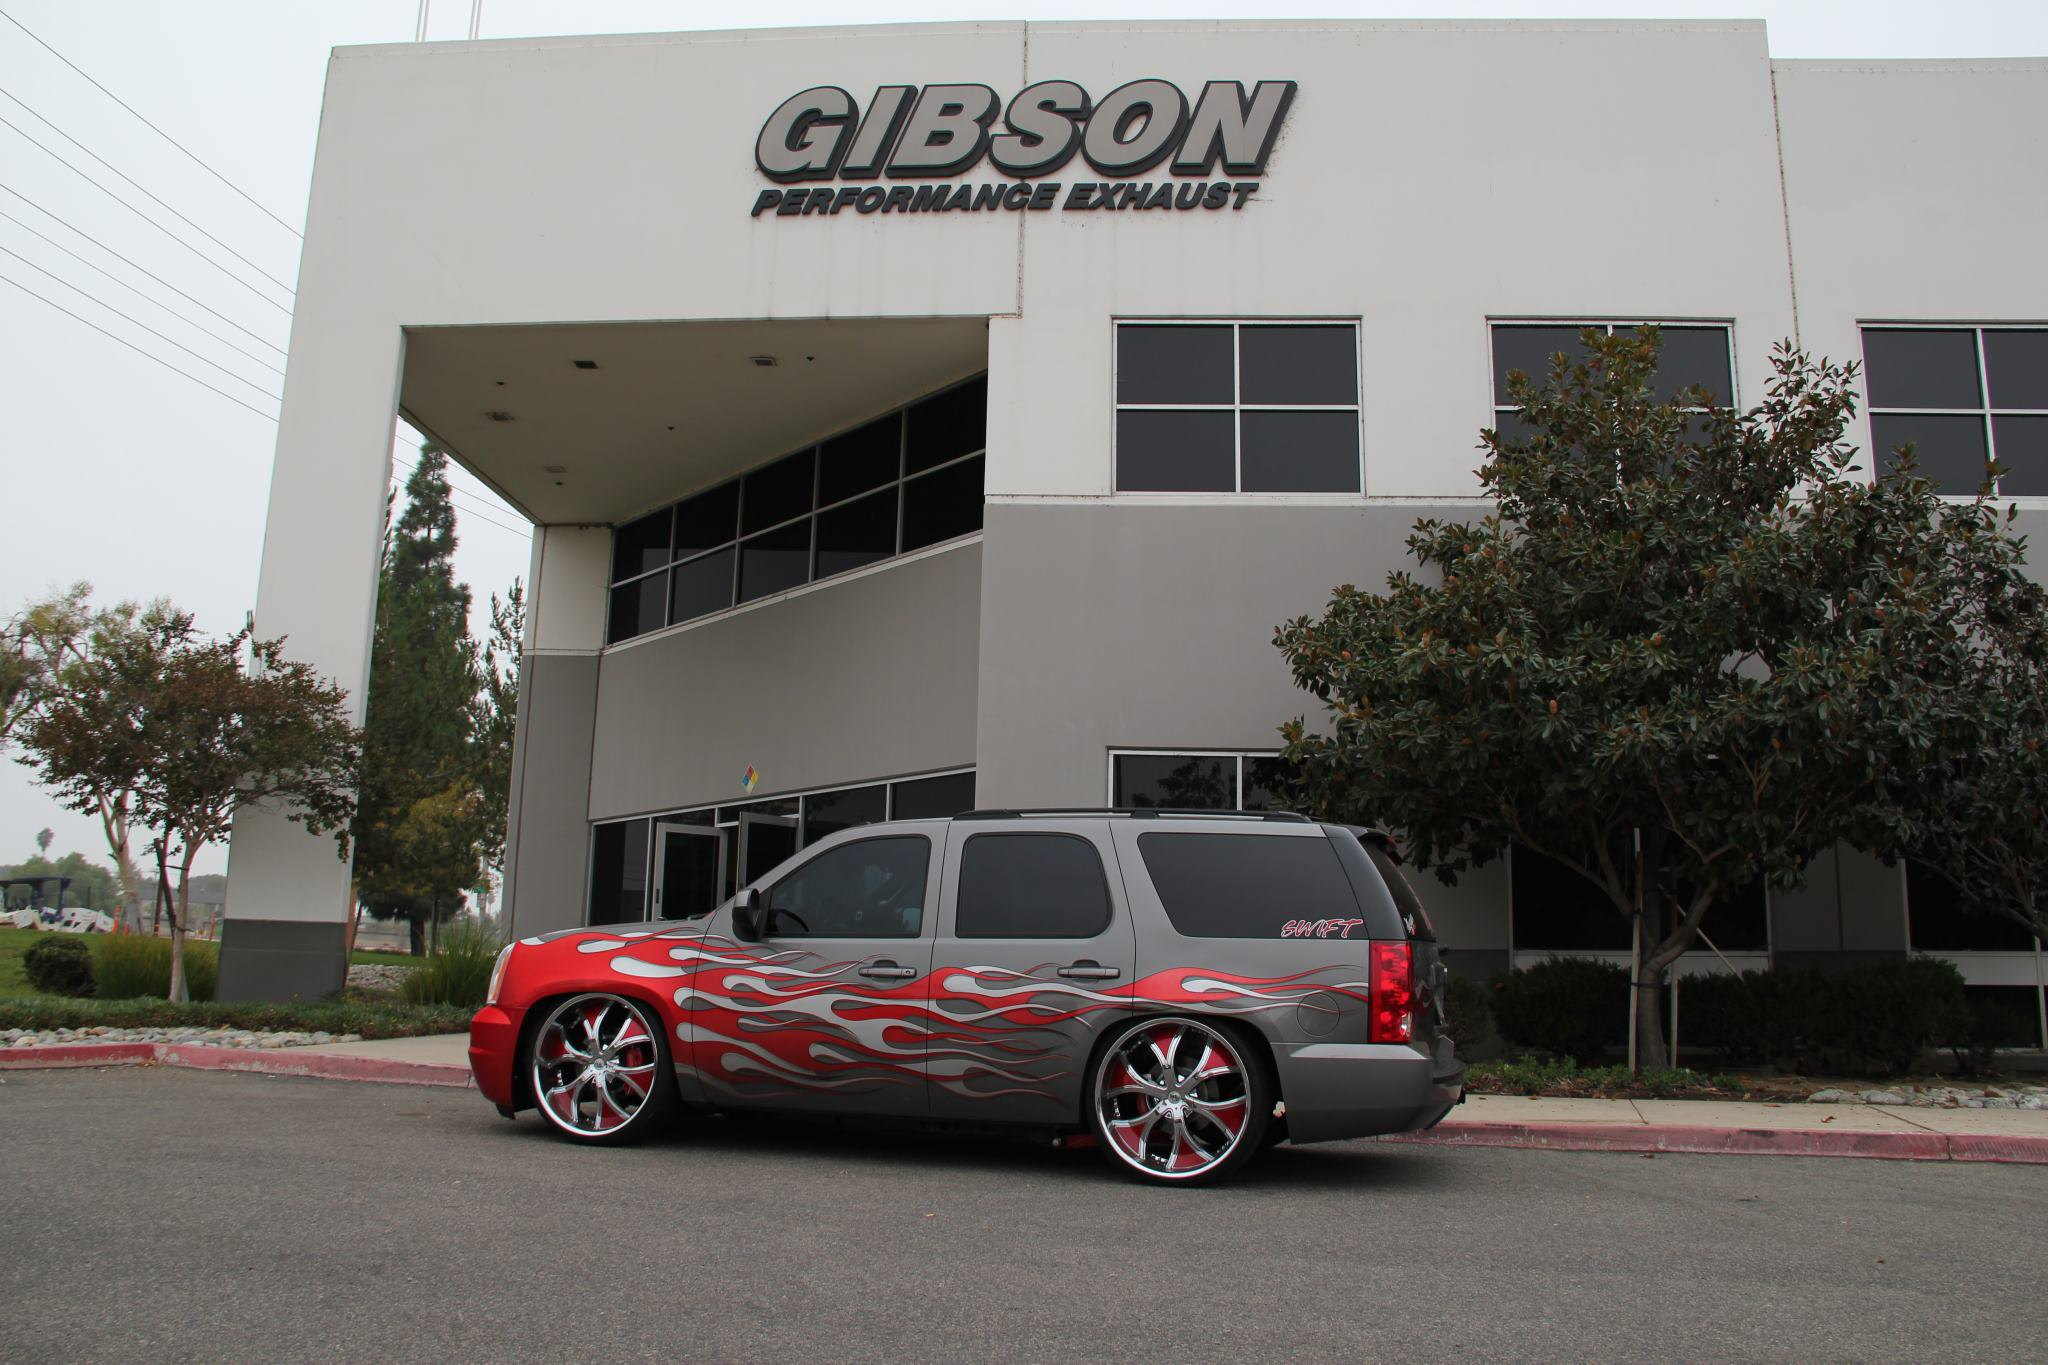 gibson exhaust performance exhaust. Cars Review. Best American Auto & Cars Review